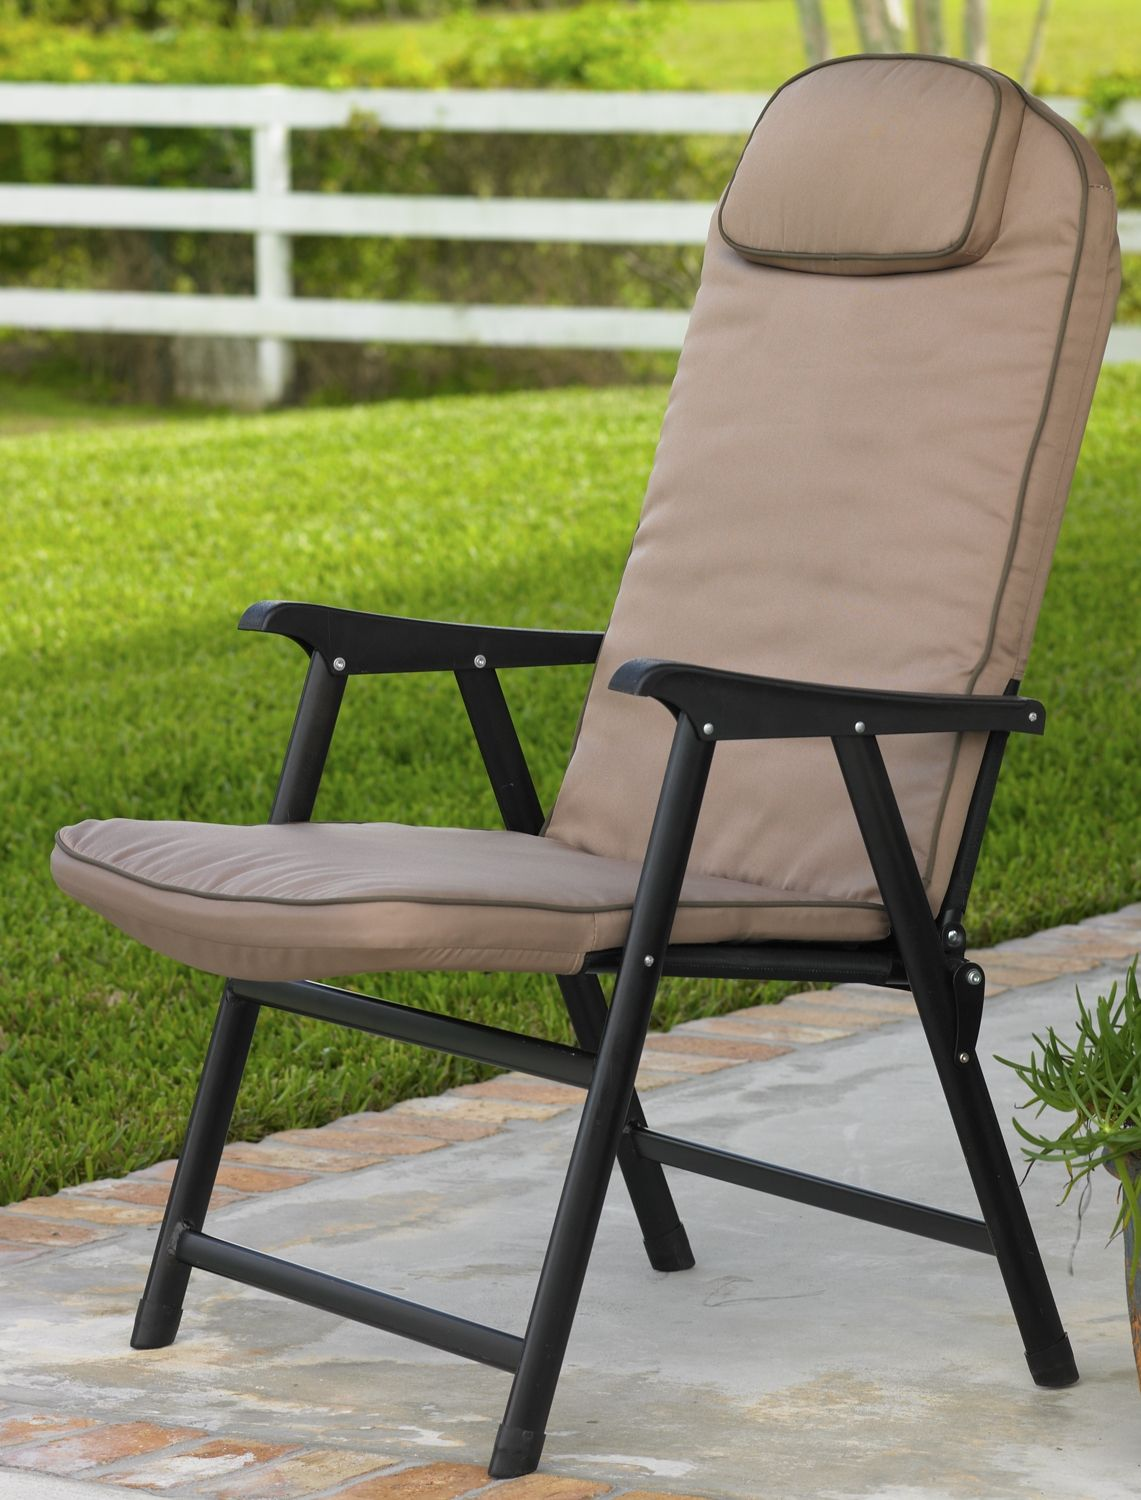 Patio Folding Chairs Padded Bjs Extra Wide Outdoor Chair Portable